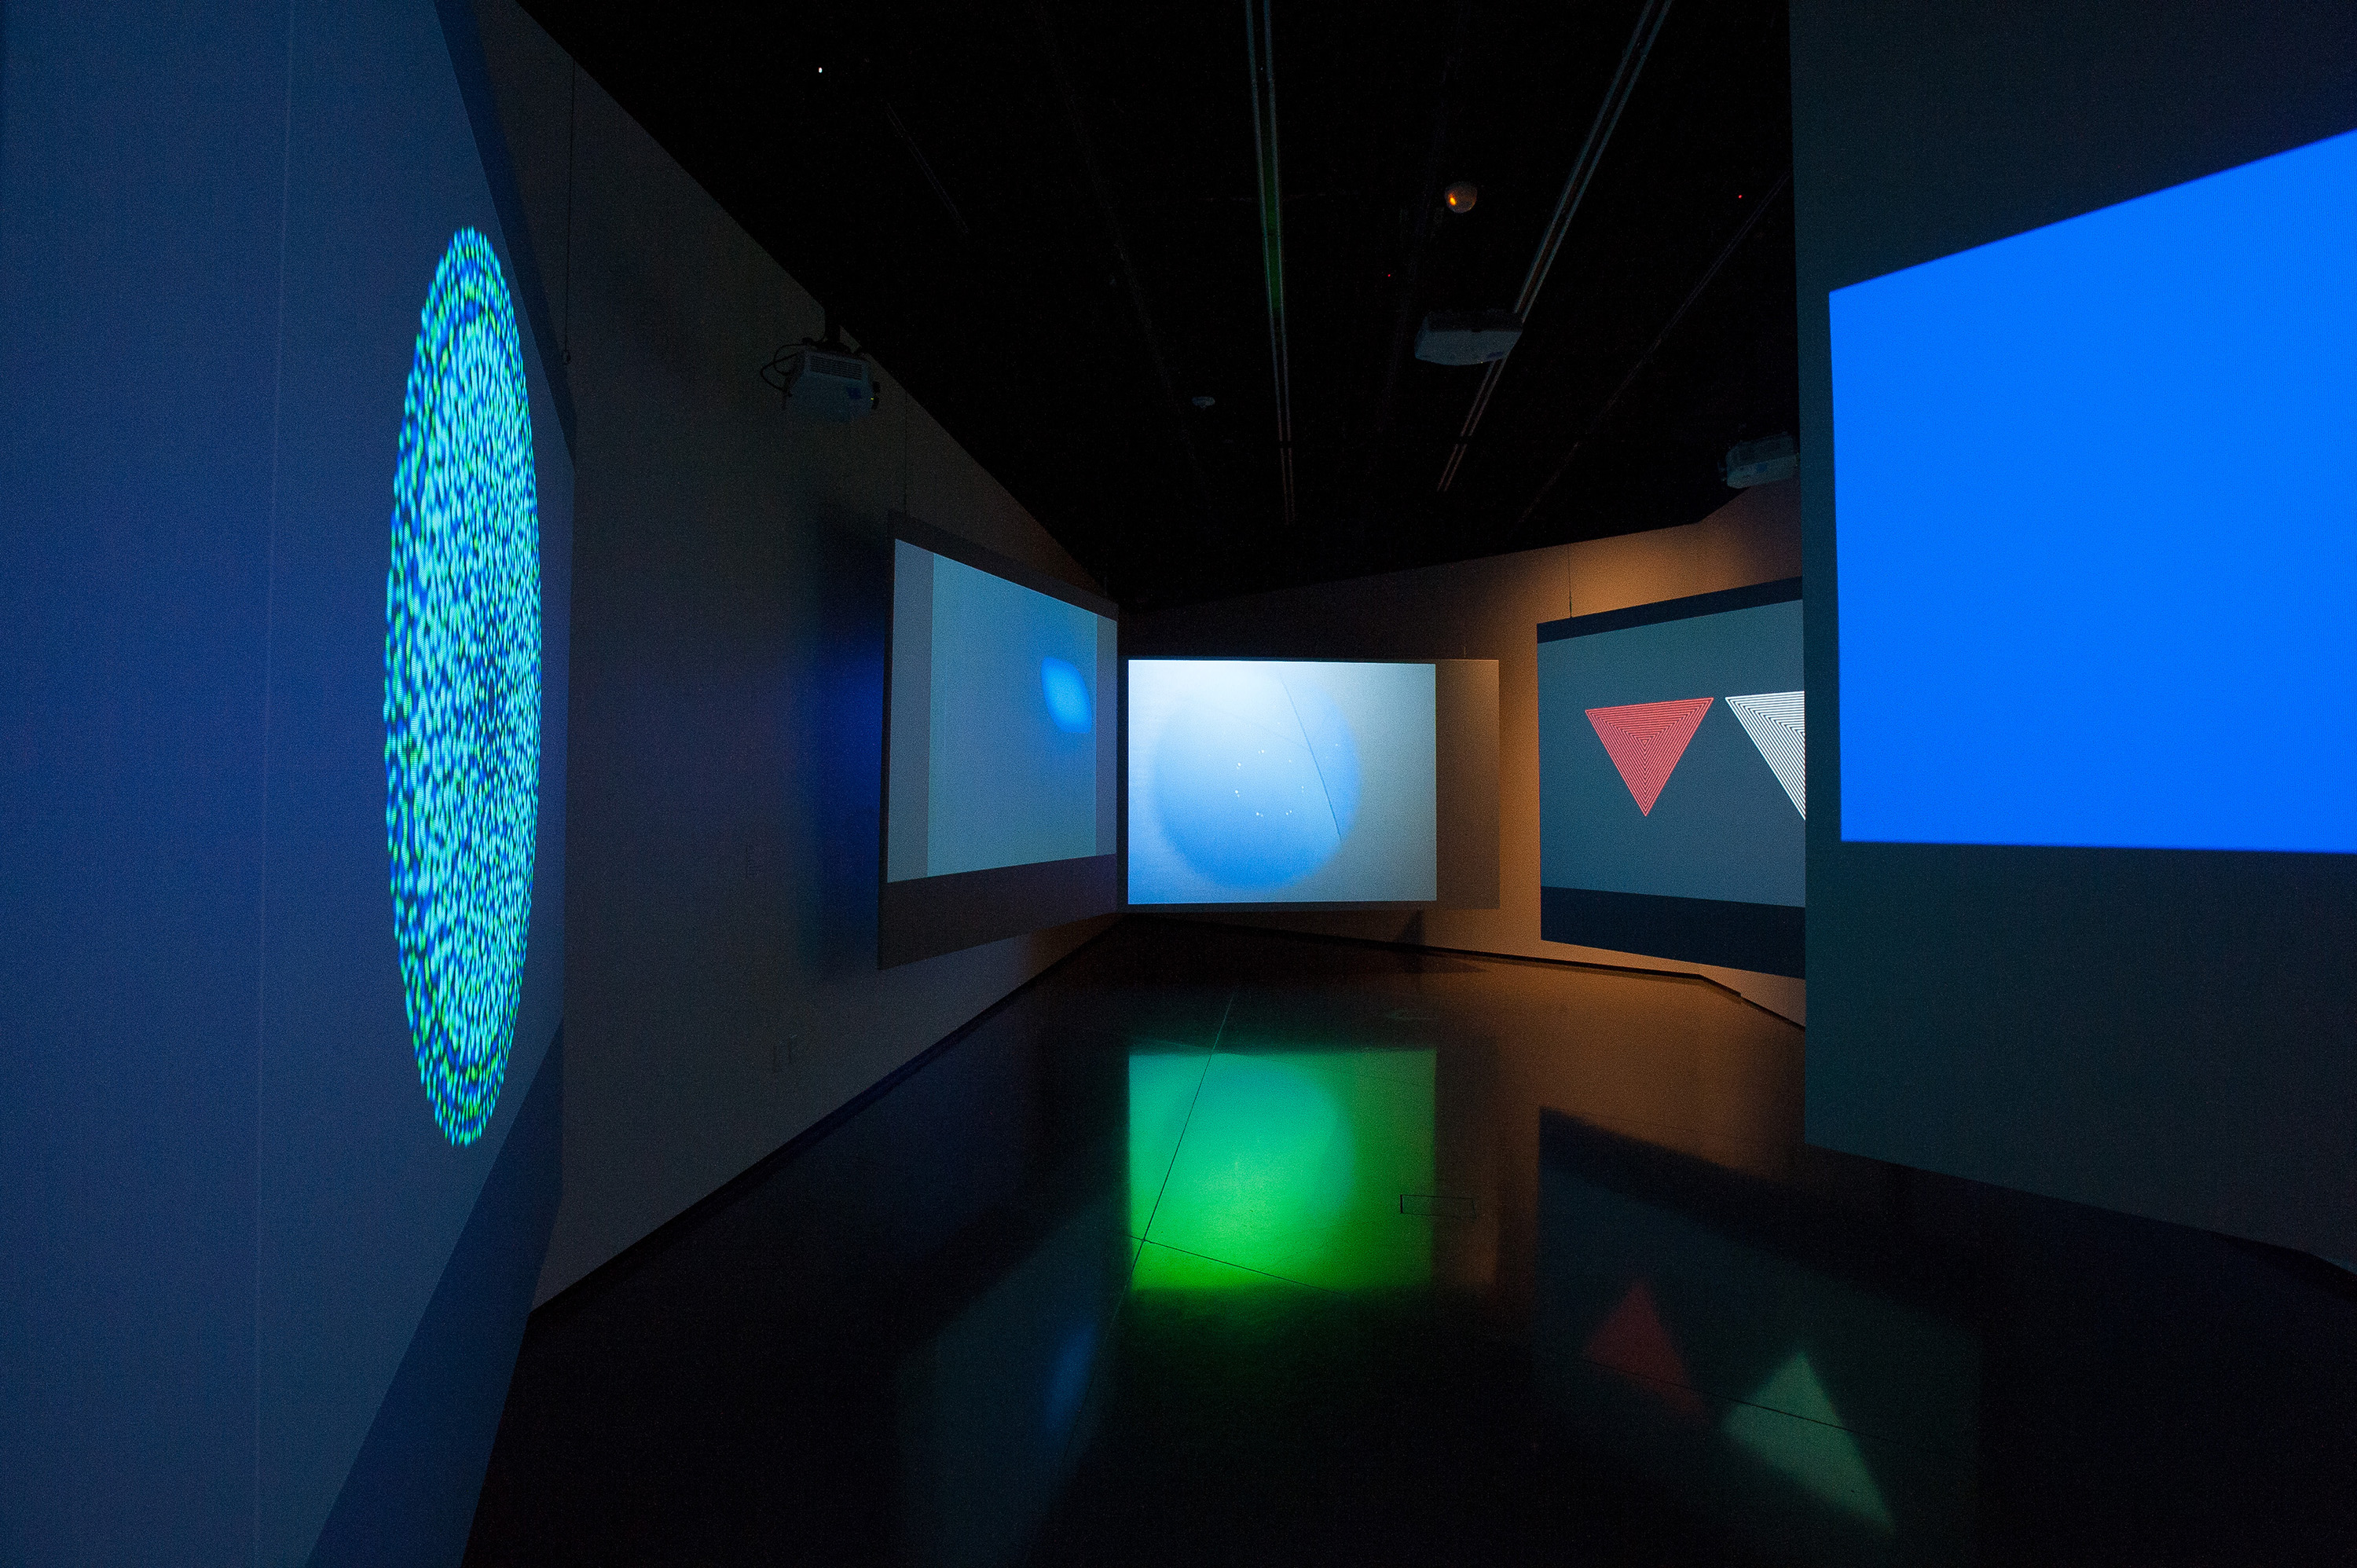 <i>Variations on a Line (Moving)</i>, installation view at the Eli and Edythe Broad Art Museum at Michigan State University, 2013. Photo: Trumpie Photography